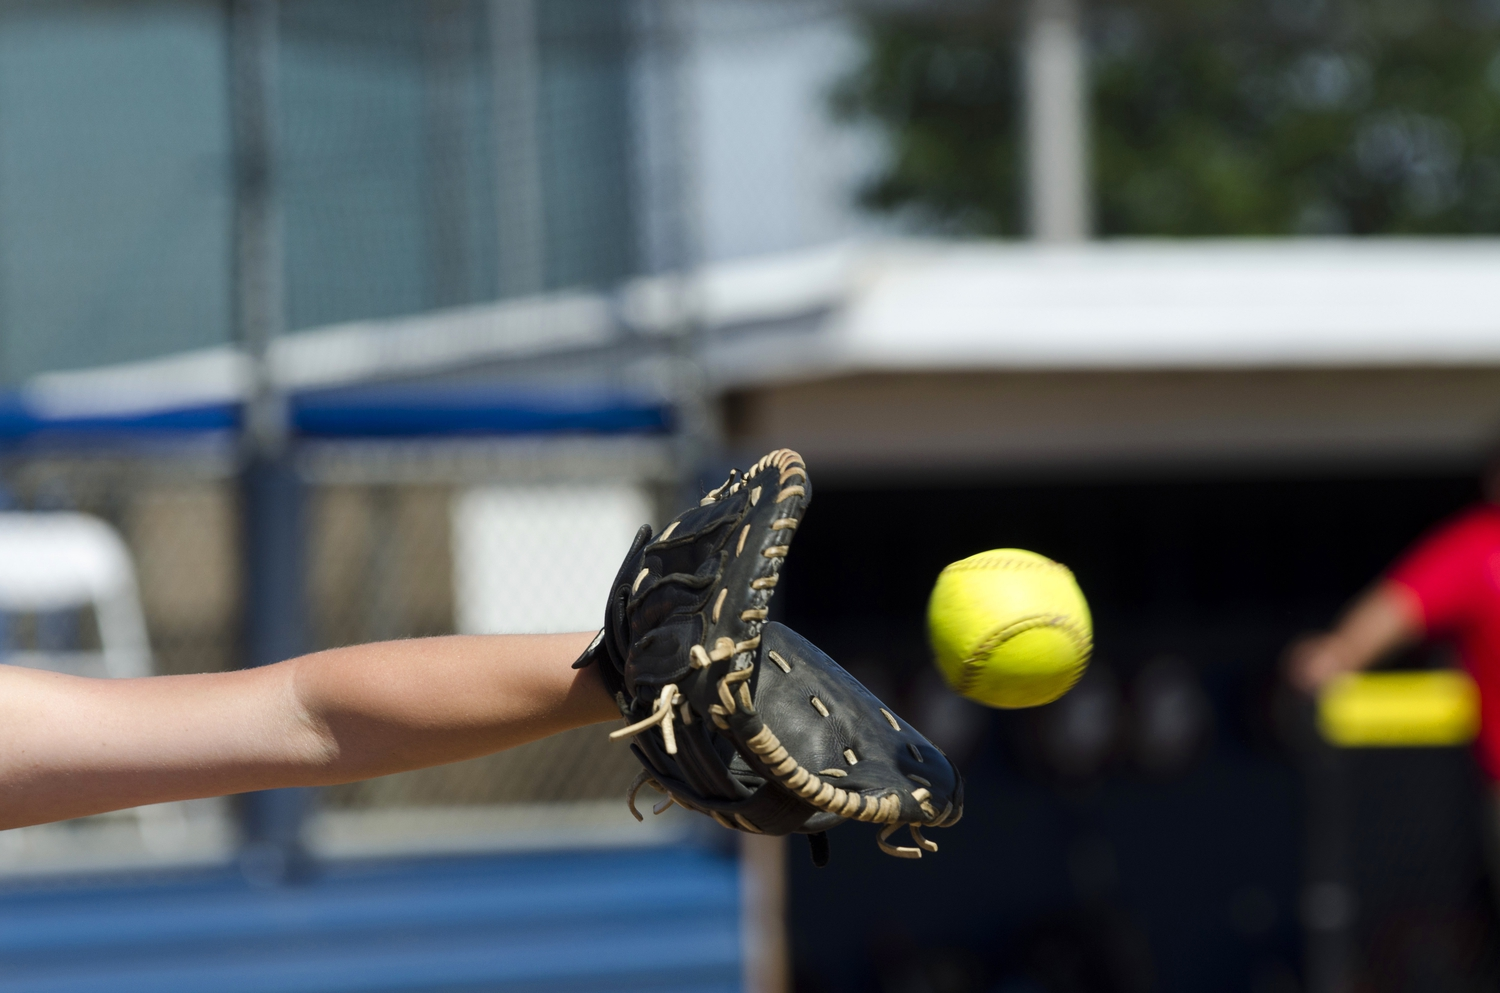 bigstock-Softball-Player-About-To-Catch-243547084.jpg